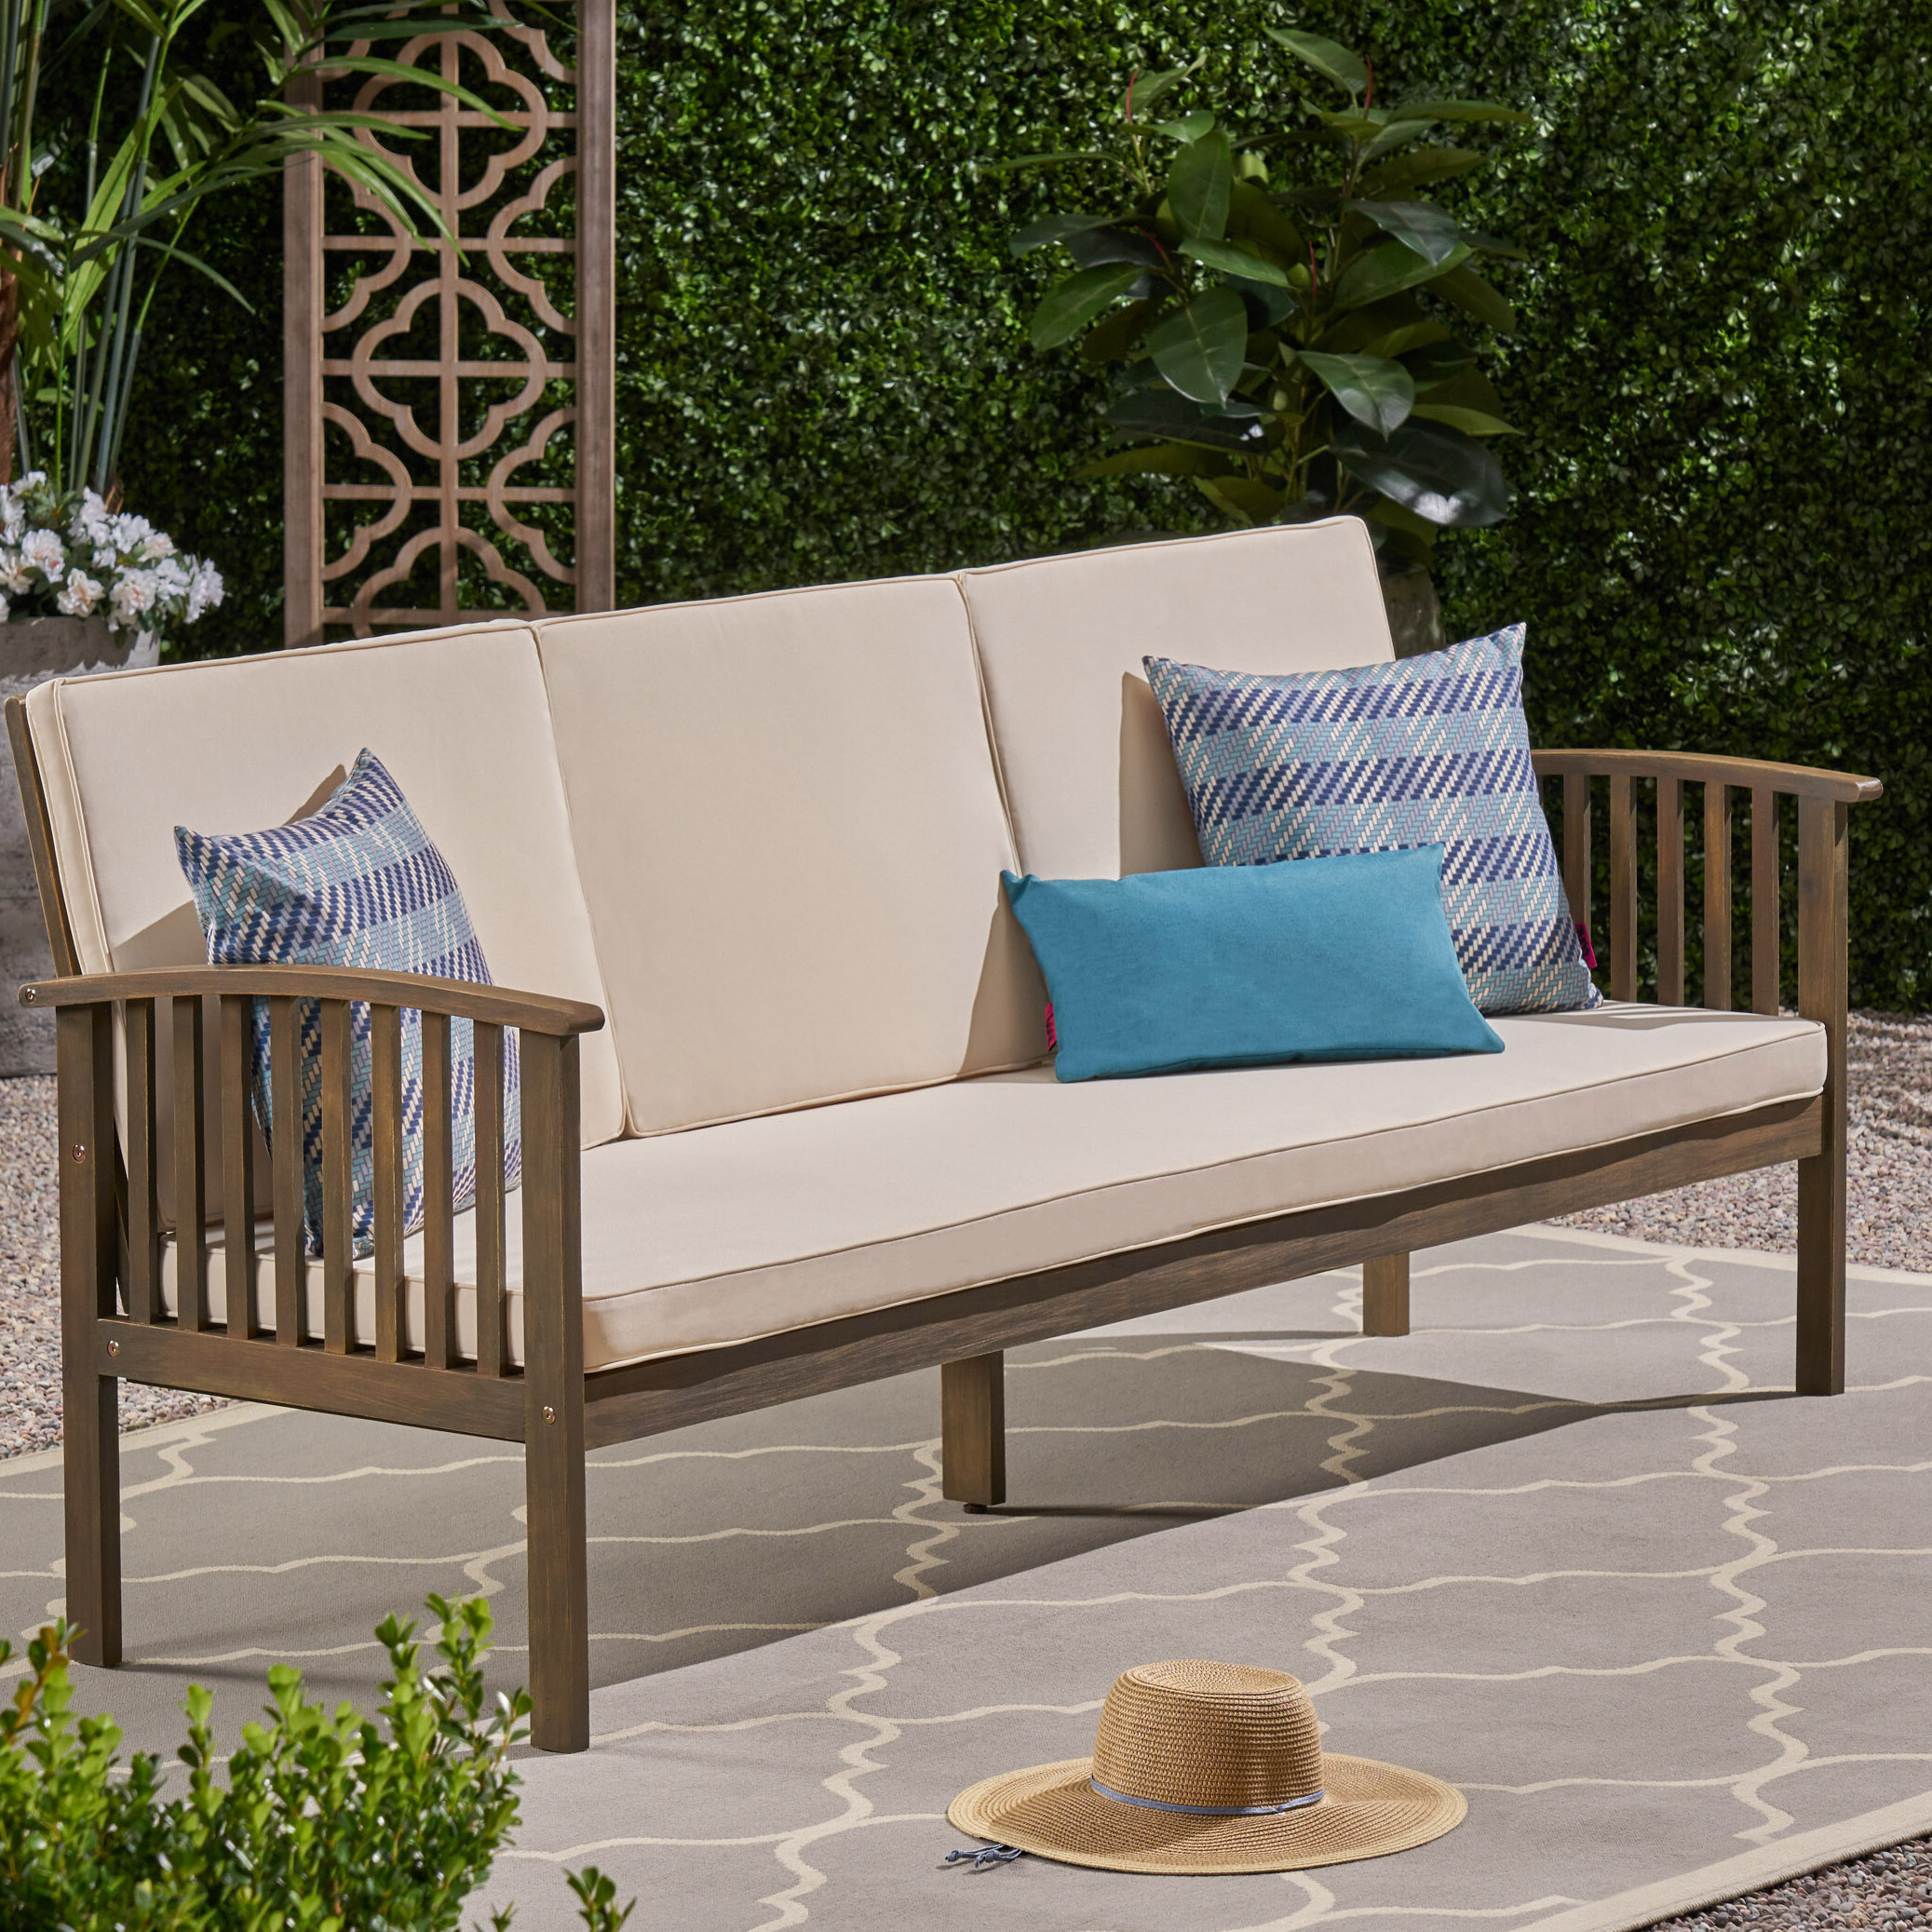 Denice Patio Sofa With Cushions With Regard To 2019 Silloth Patio Sofas With Cushions (View 3 of 20)